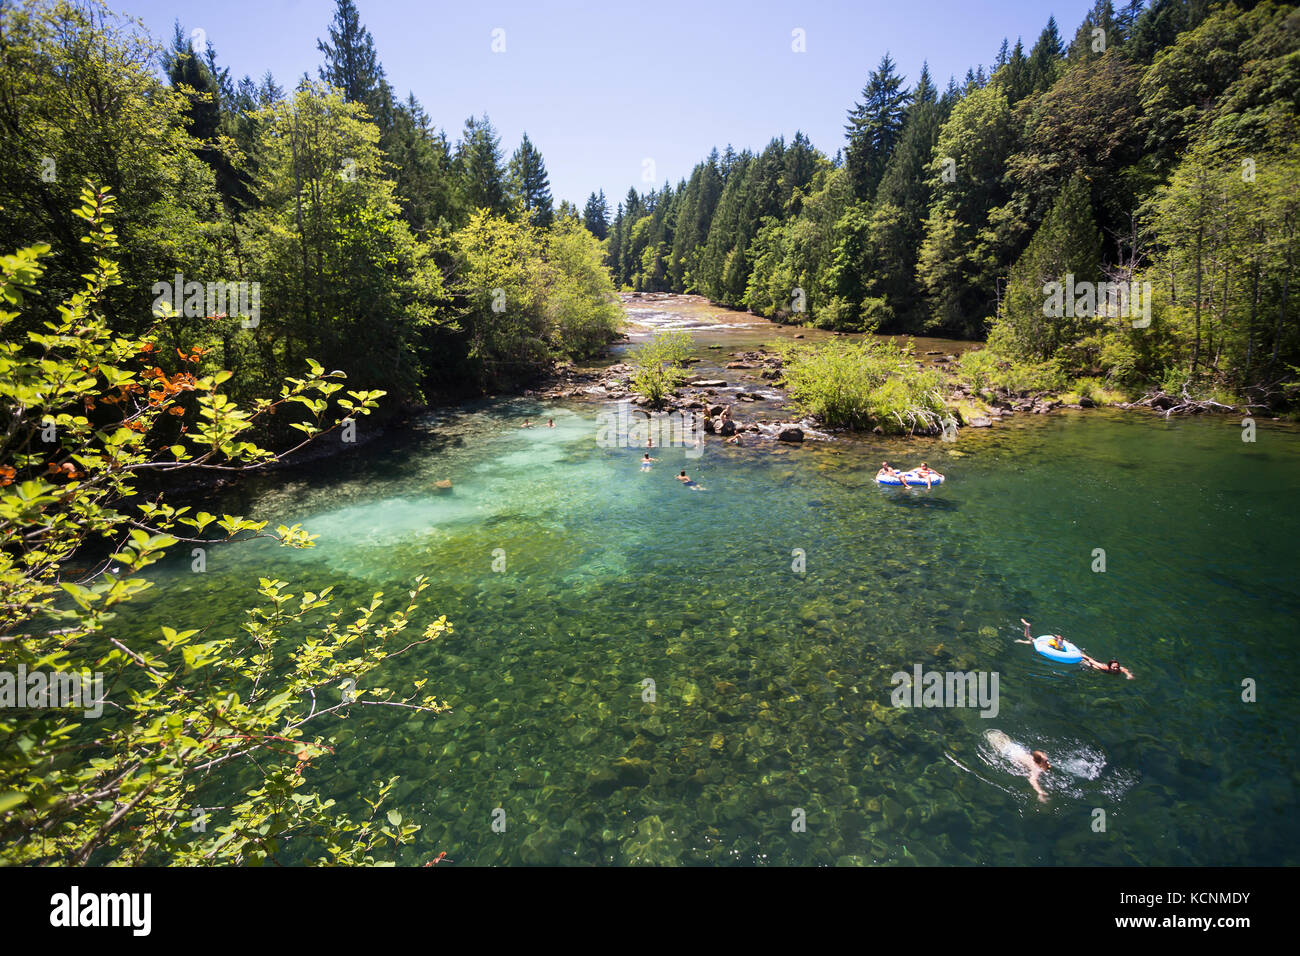 Sun seekers and swimmers migrate to Barbers Hole along the Oyster River, a popular swimming area in the Comox Valley. - Stock Image